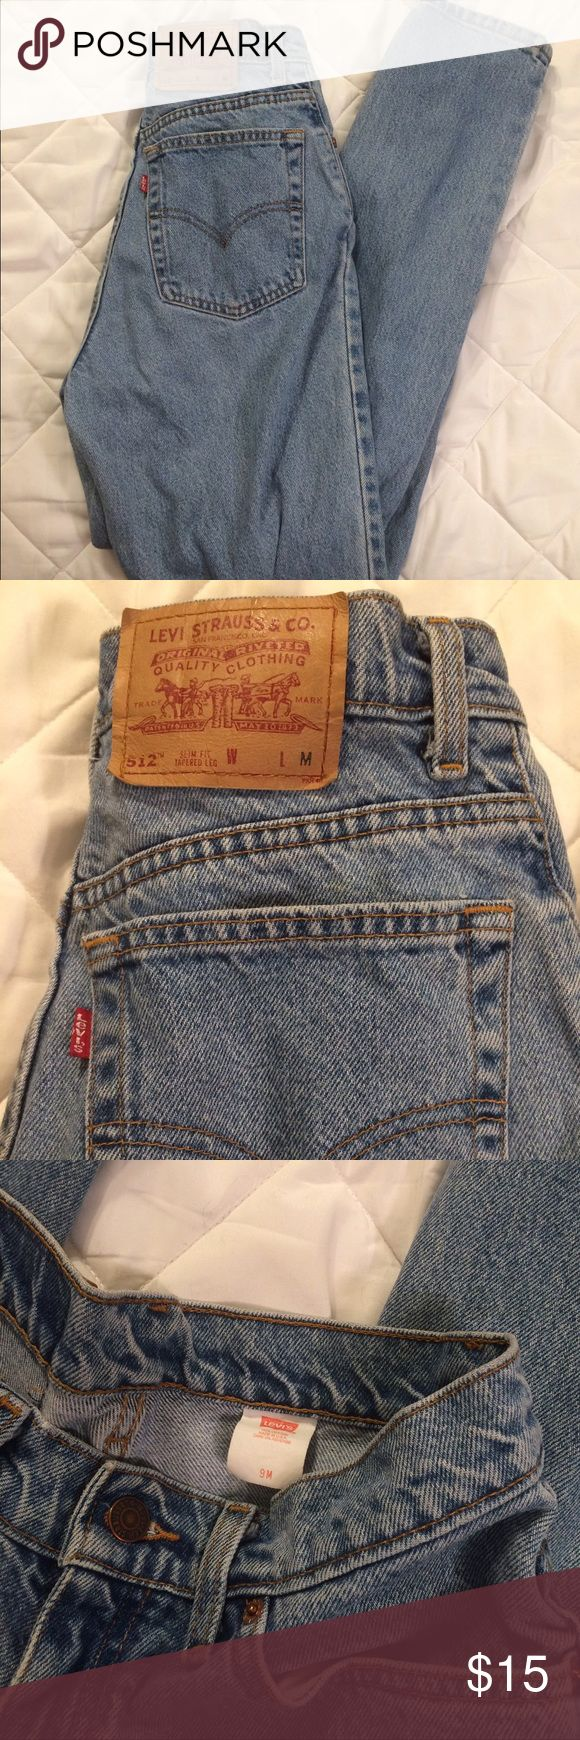 vintage levi's 512 jeans such a cute fit! tag says 9 so im guessing it would fit 8-10 depending on the fit you want Levi's Jeans